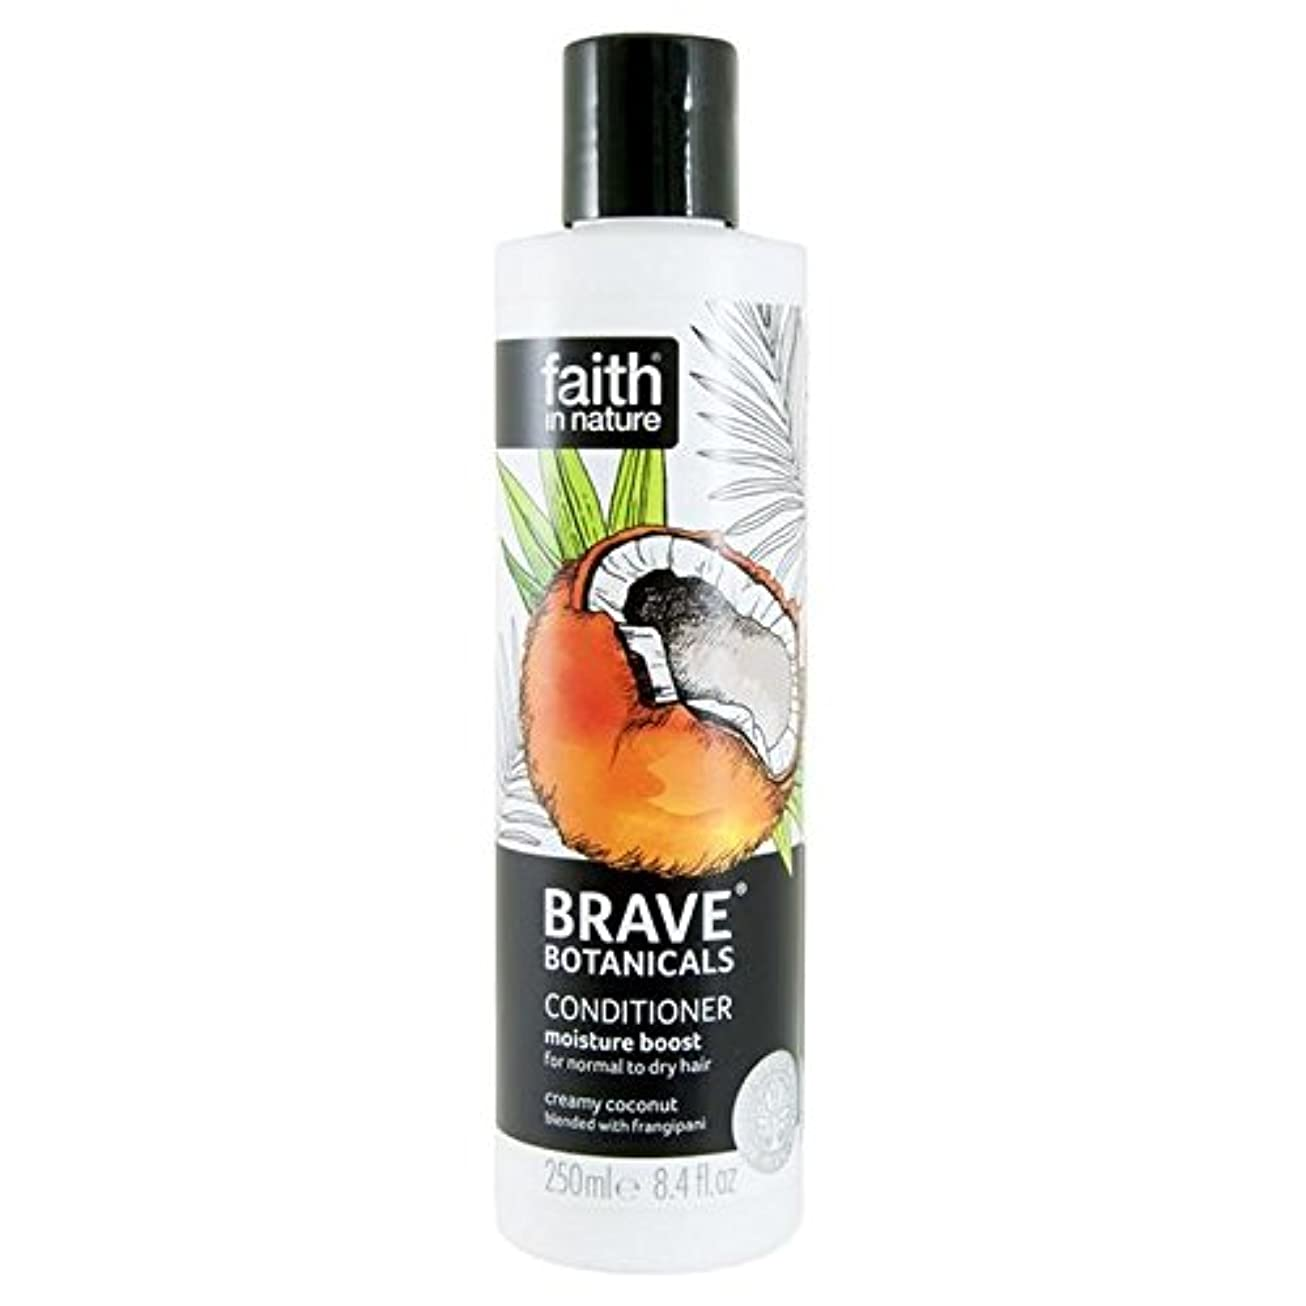 回転苦情文句類似性Brave Botanicals Coconut & Frangipani Moisture Boost Conditioner 250ml (Pack of 6) - (Faith In Nature) 勇敢な植物ココナッツ...